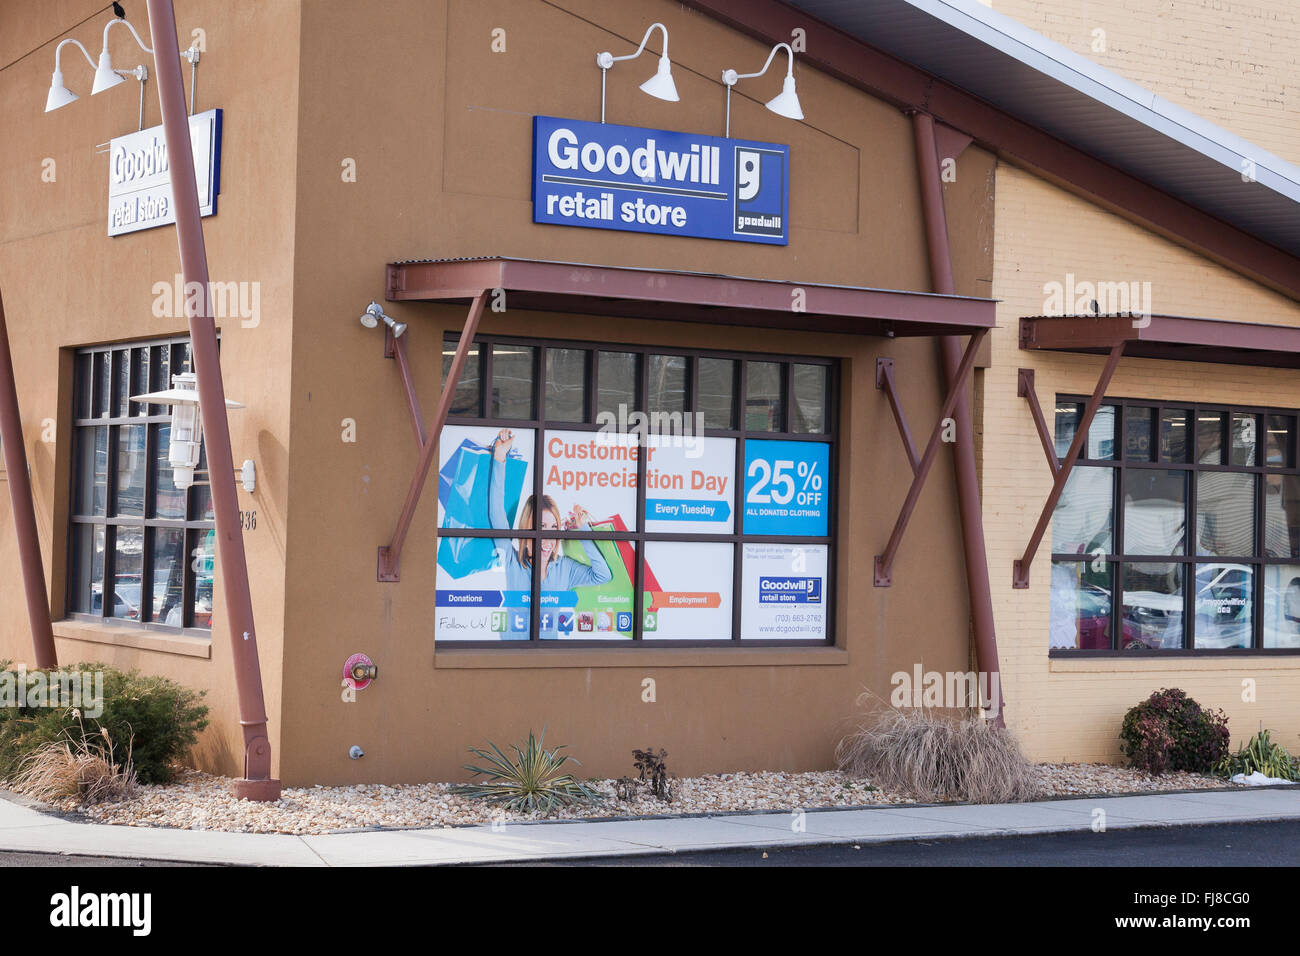 Goodwill retail store - USA - Stock Image